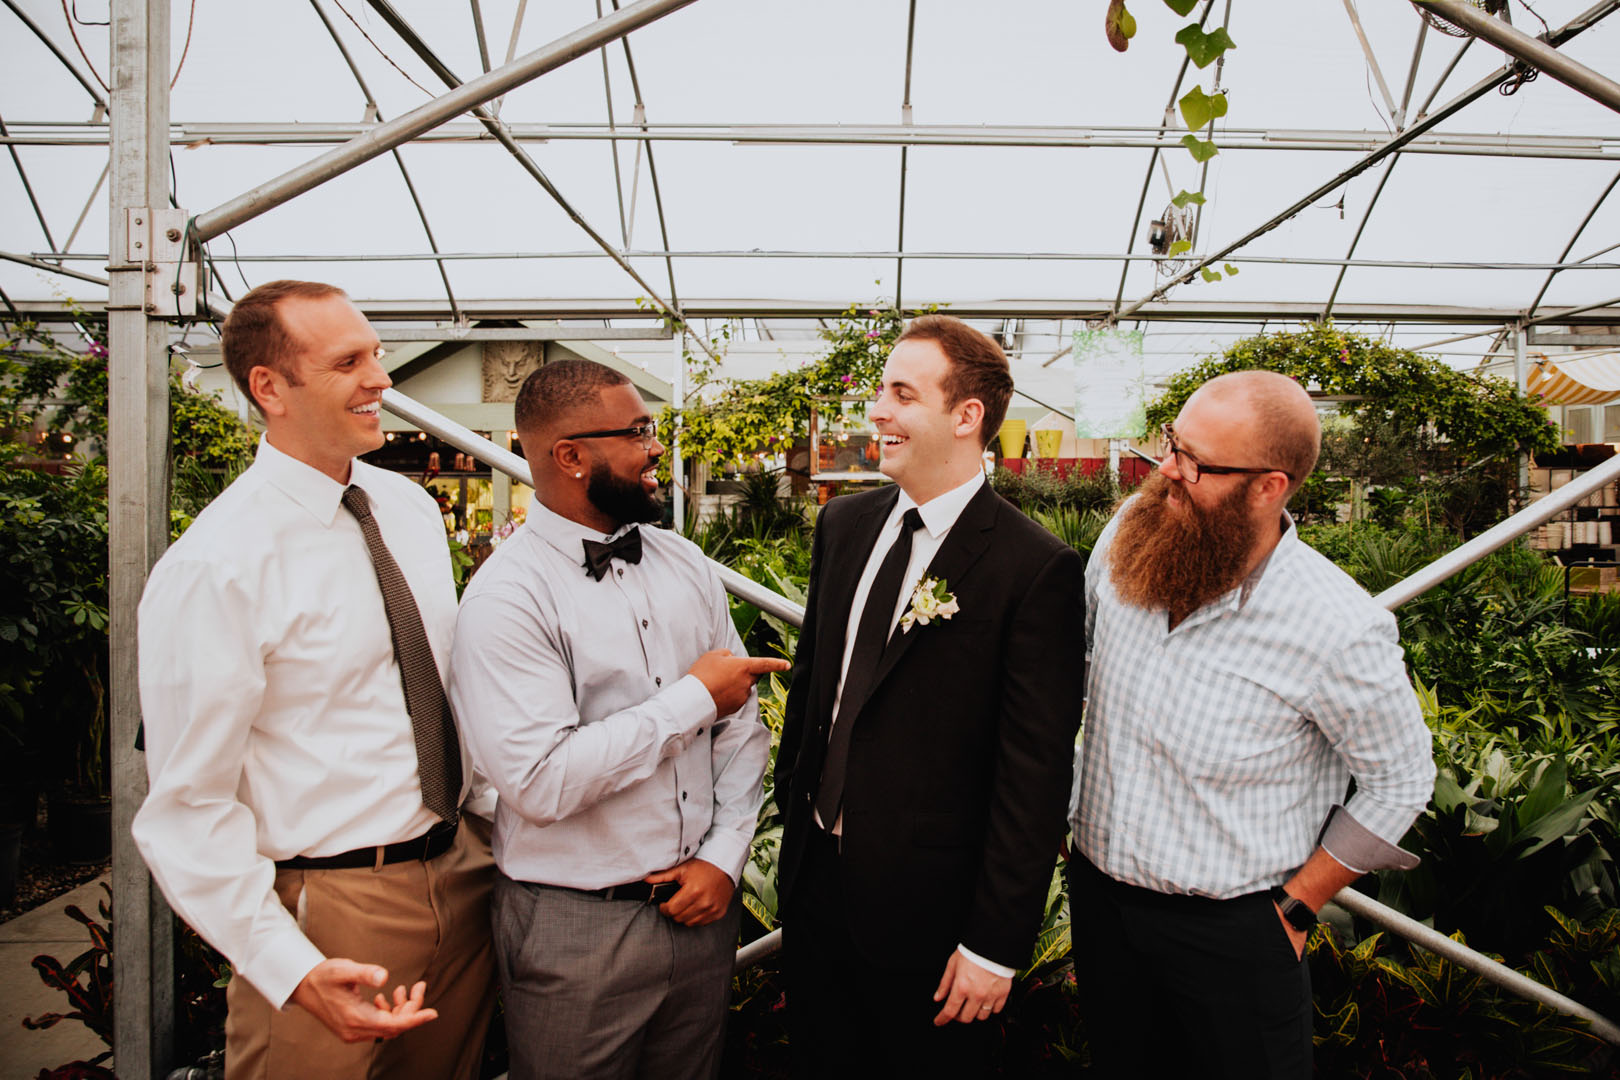 Green House Wedding, Utah Elopement, Utah Wedding Photographer, Salt Lake Wedding-28.jpg